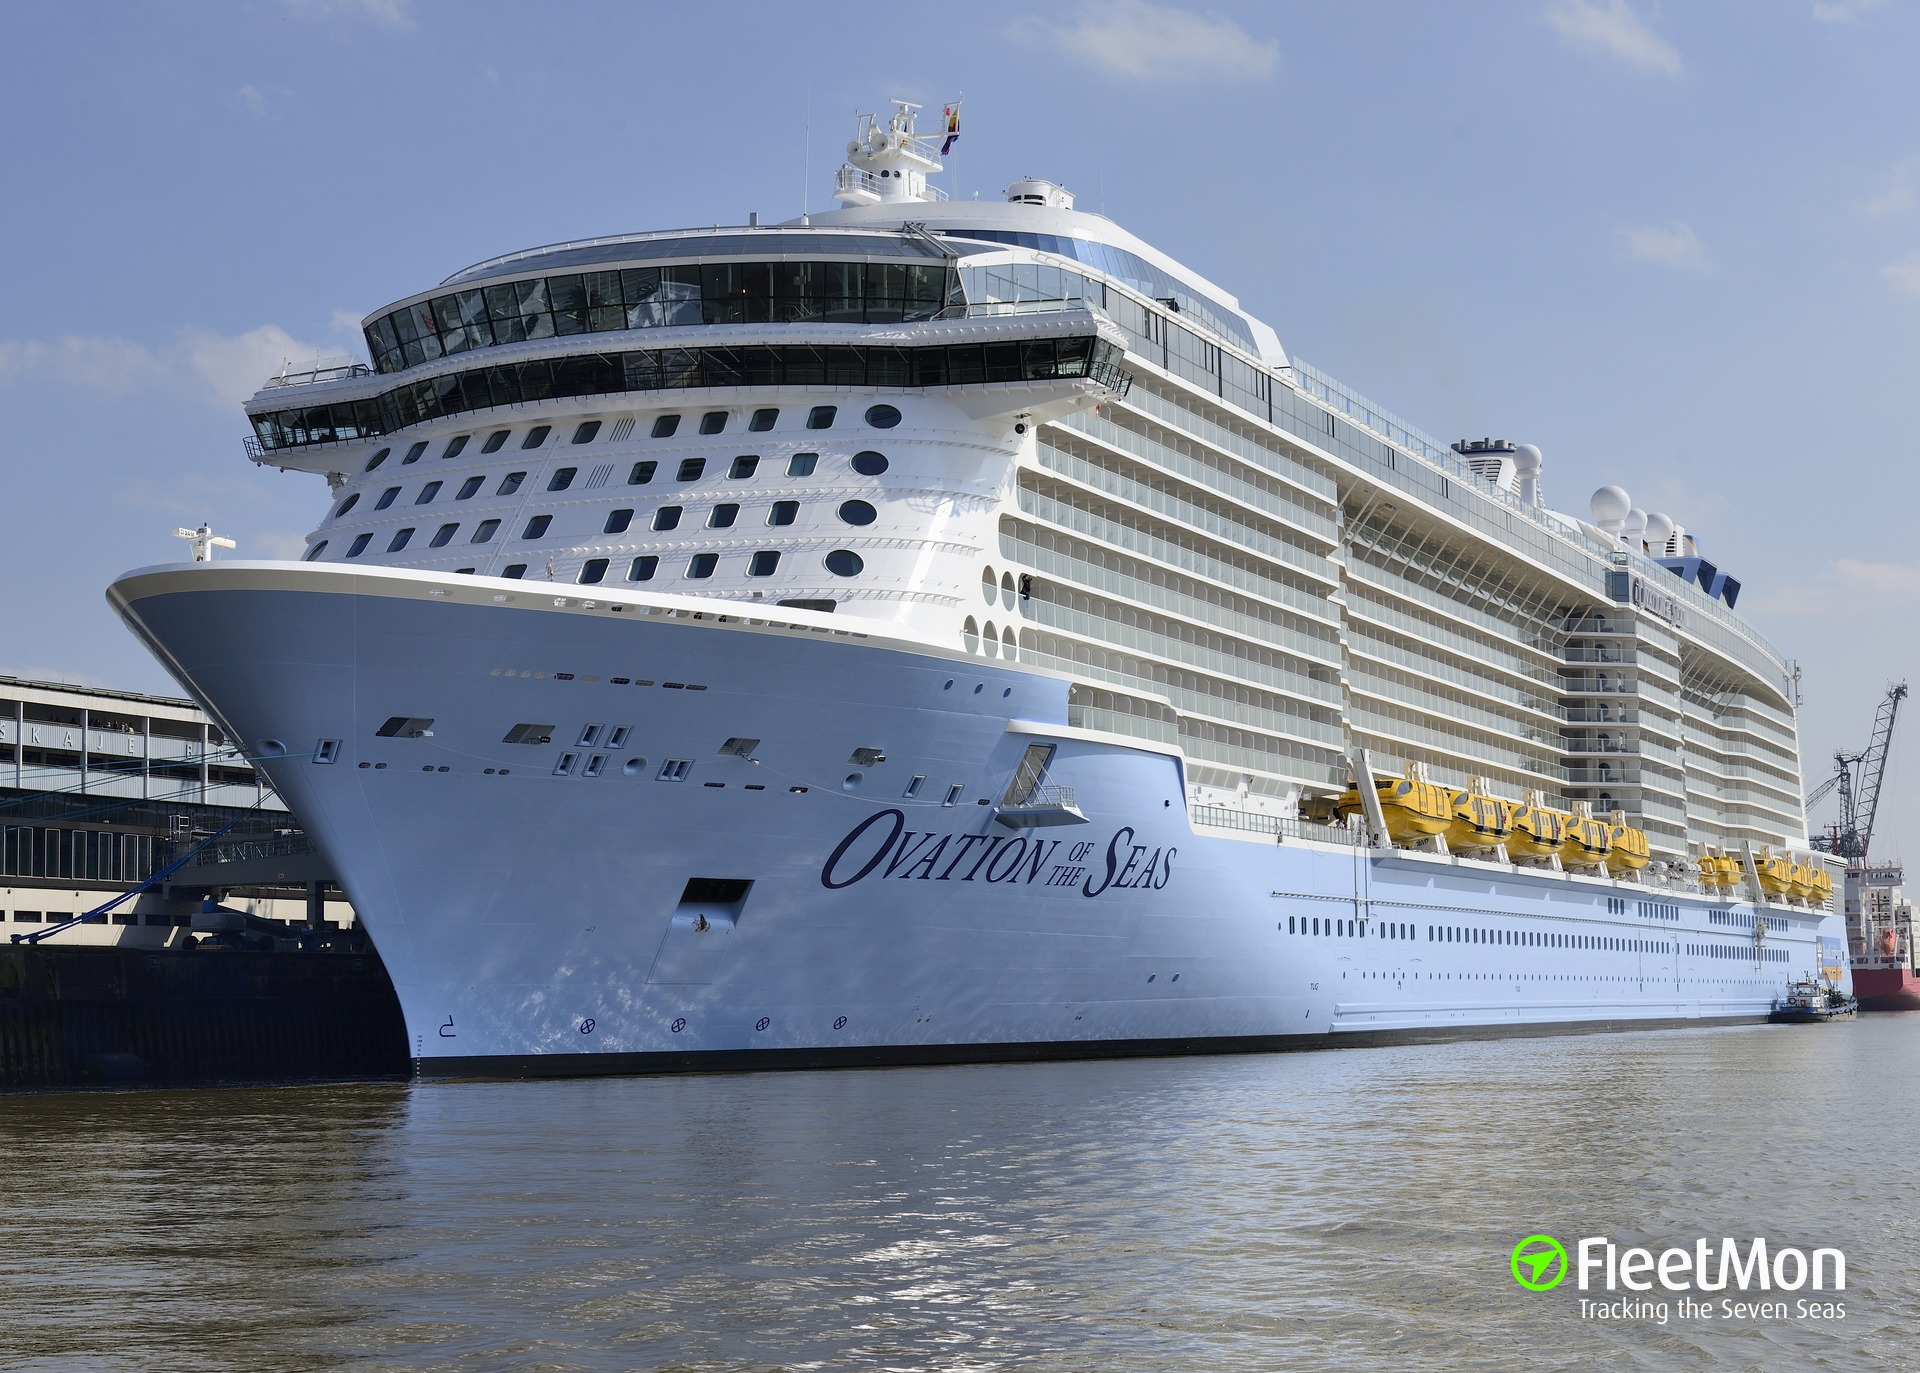 Ovation Of The Seas Passenger Ship Imo 9697753